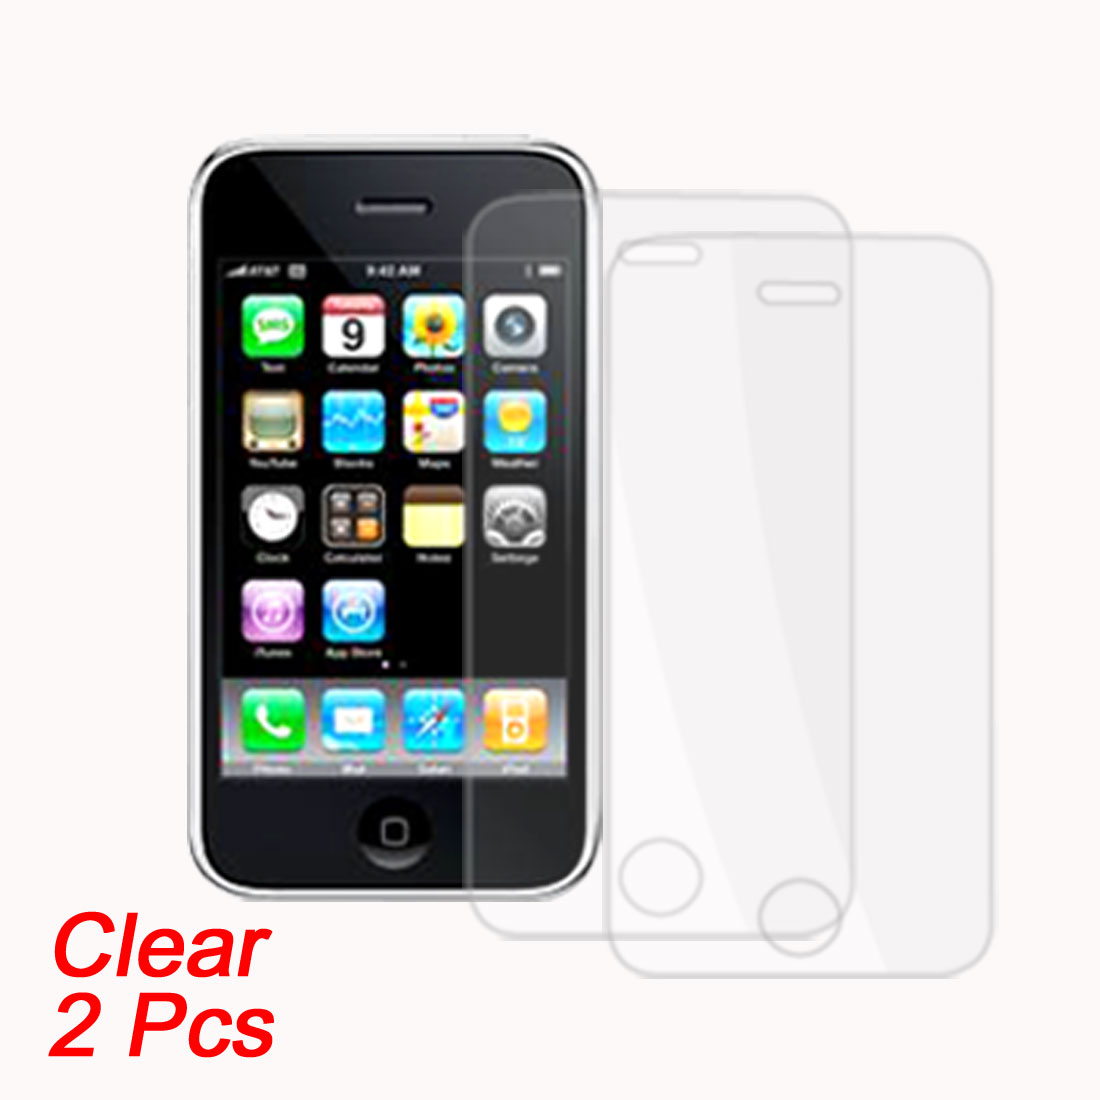 2 Pcs Plastic Clear LCD Screen Protectors for Cell Phone